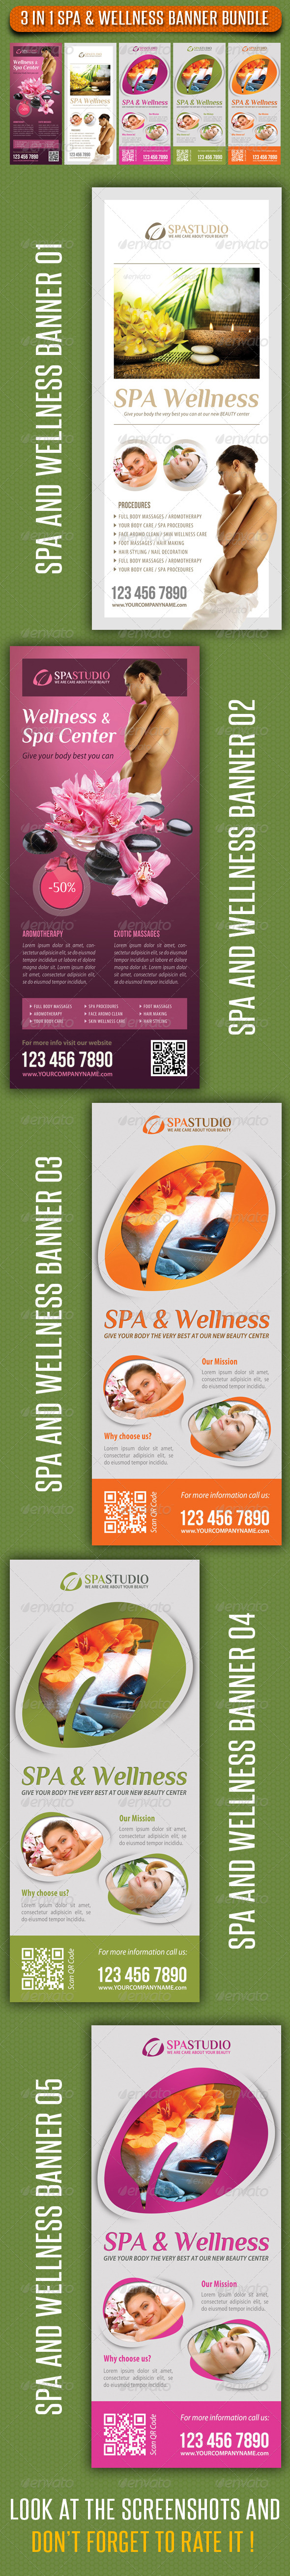 GraphicRiver 3 in 1 Spa Wellness Banner Bundle 06 7782537